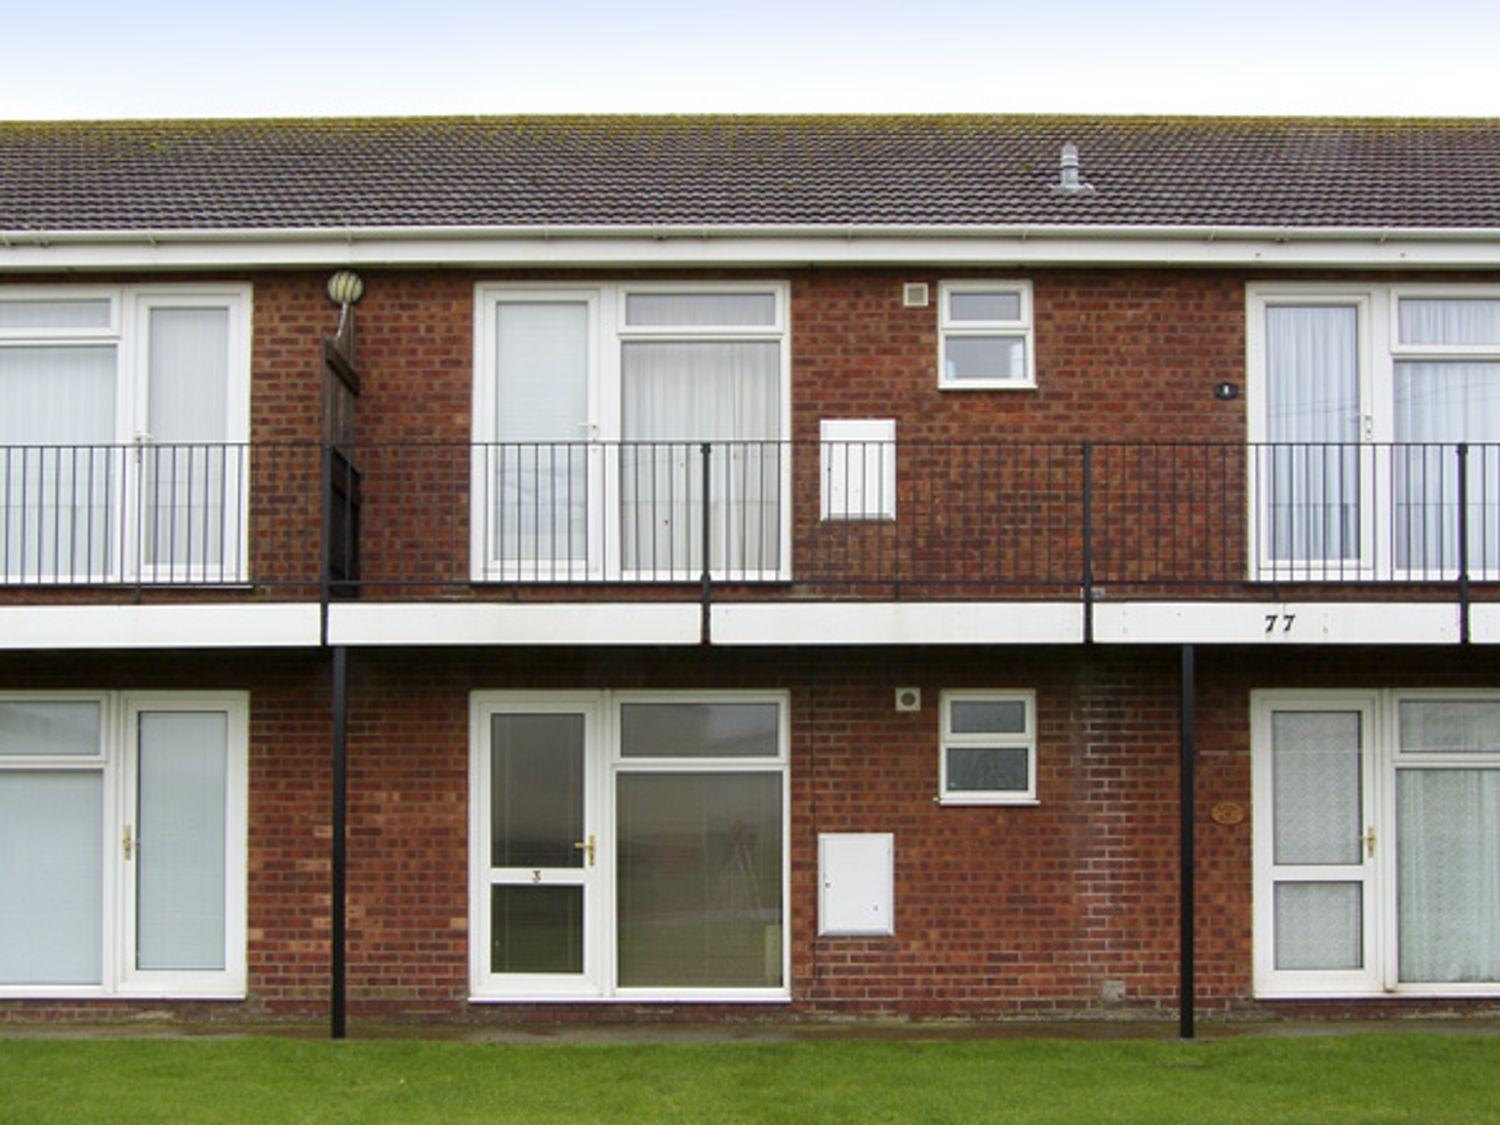 Flat 3 - Self Catering Accommodation at Hunstanton